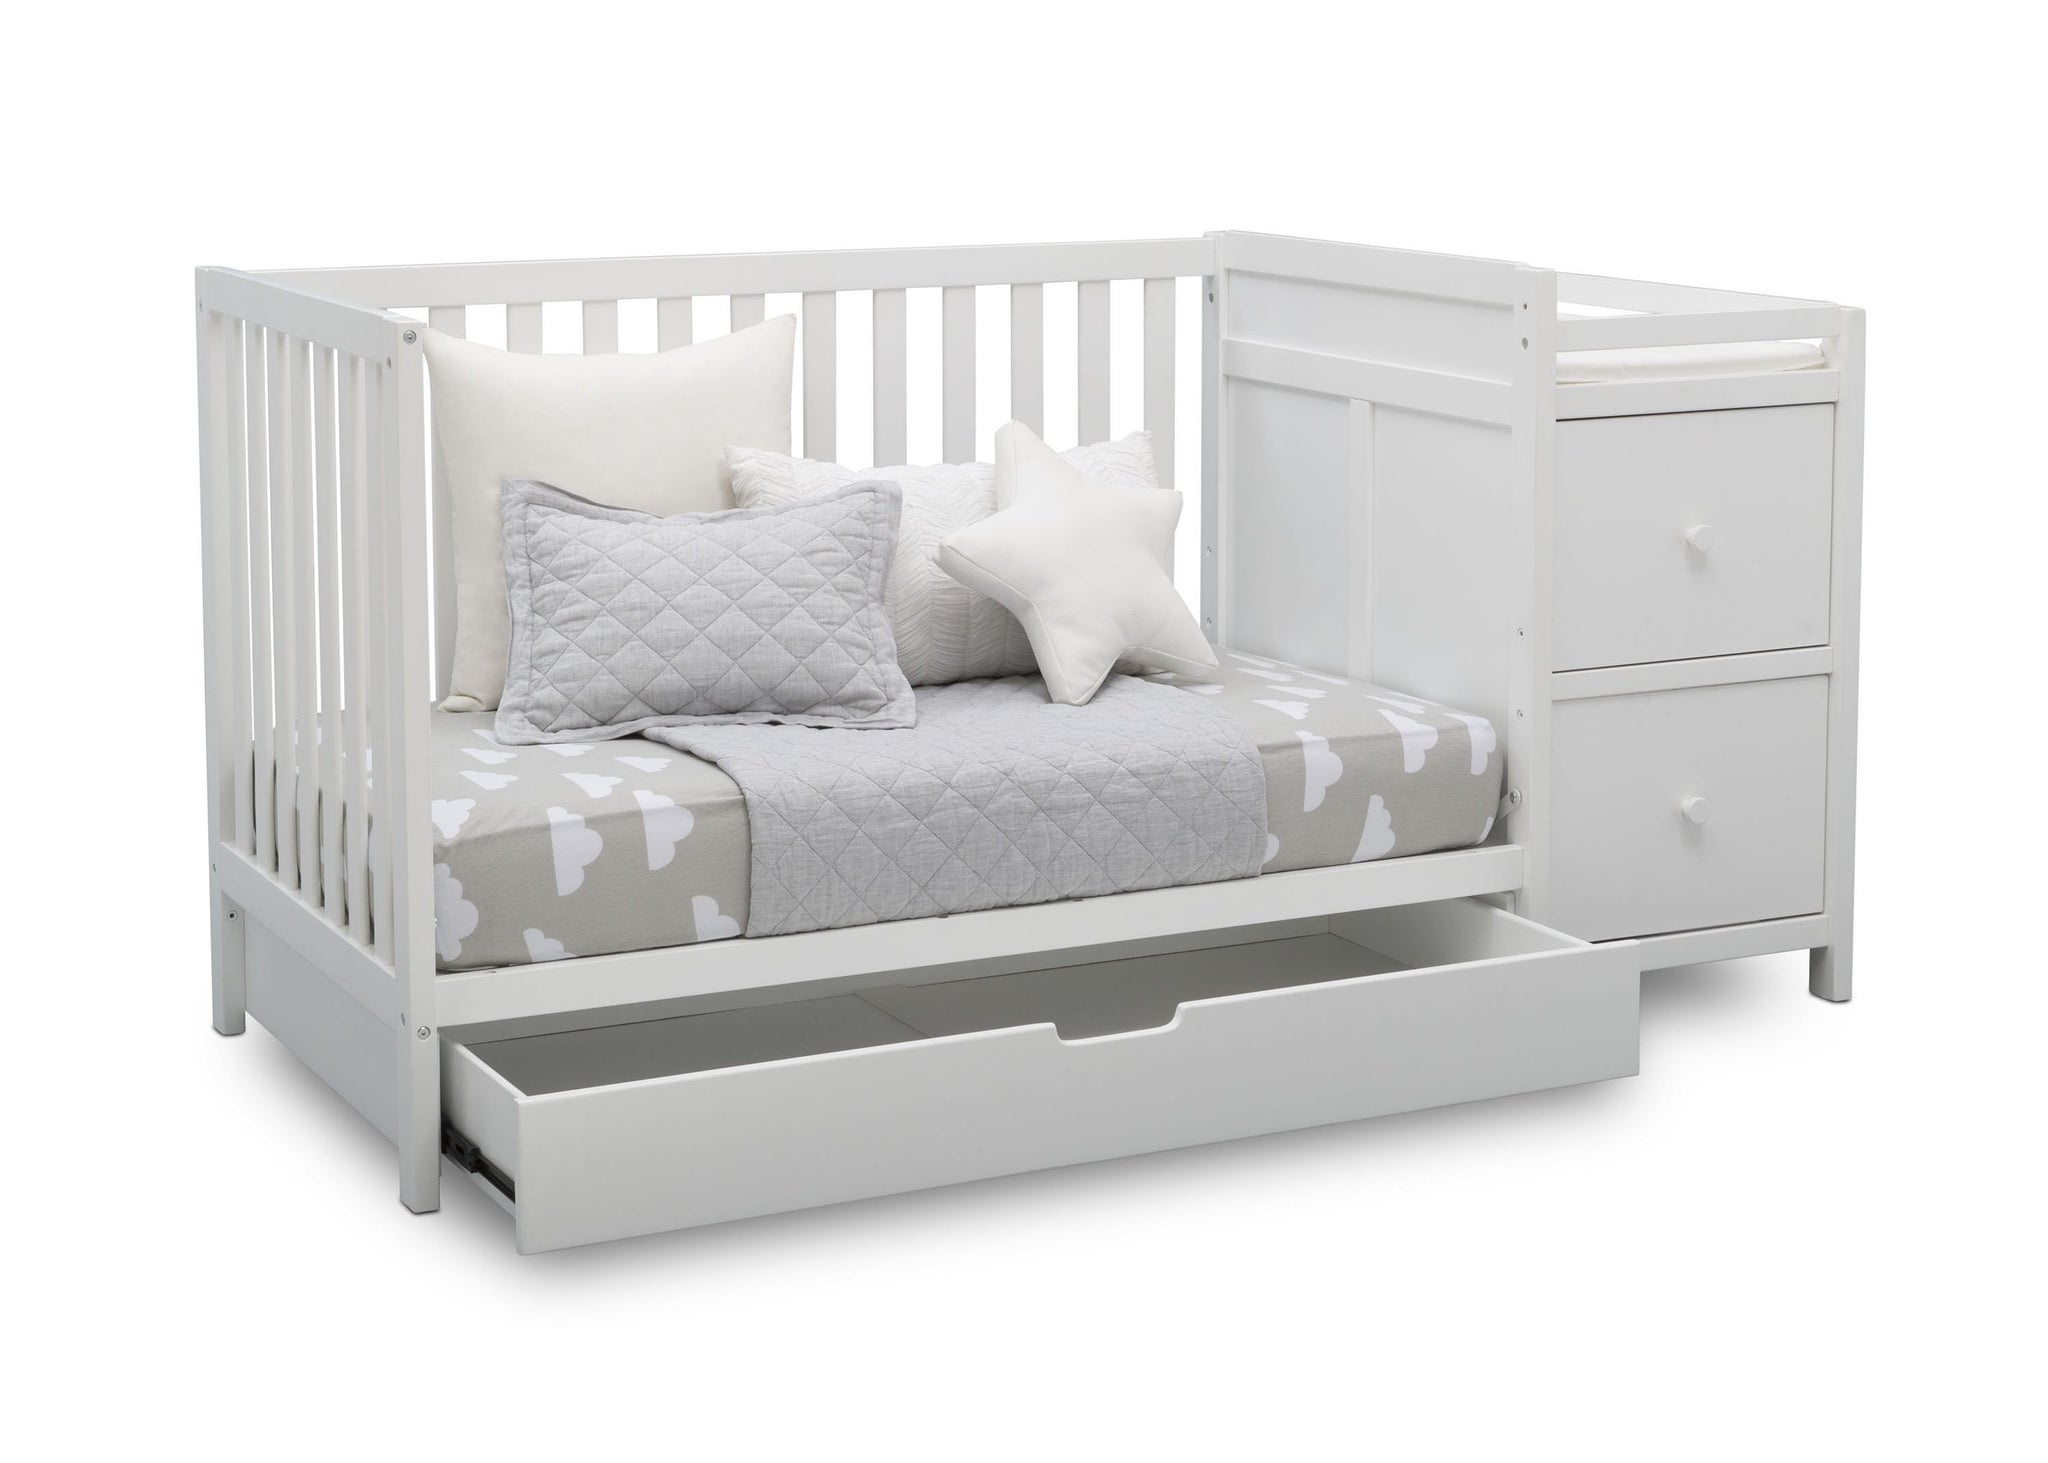 Delta Children Bianca White (130) Luna Convertible Crib N Changer with Under Drawer (536160), Silo Daybed, b3b